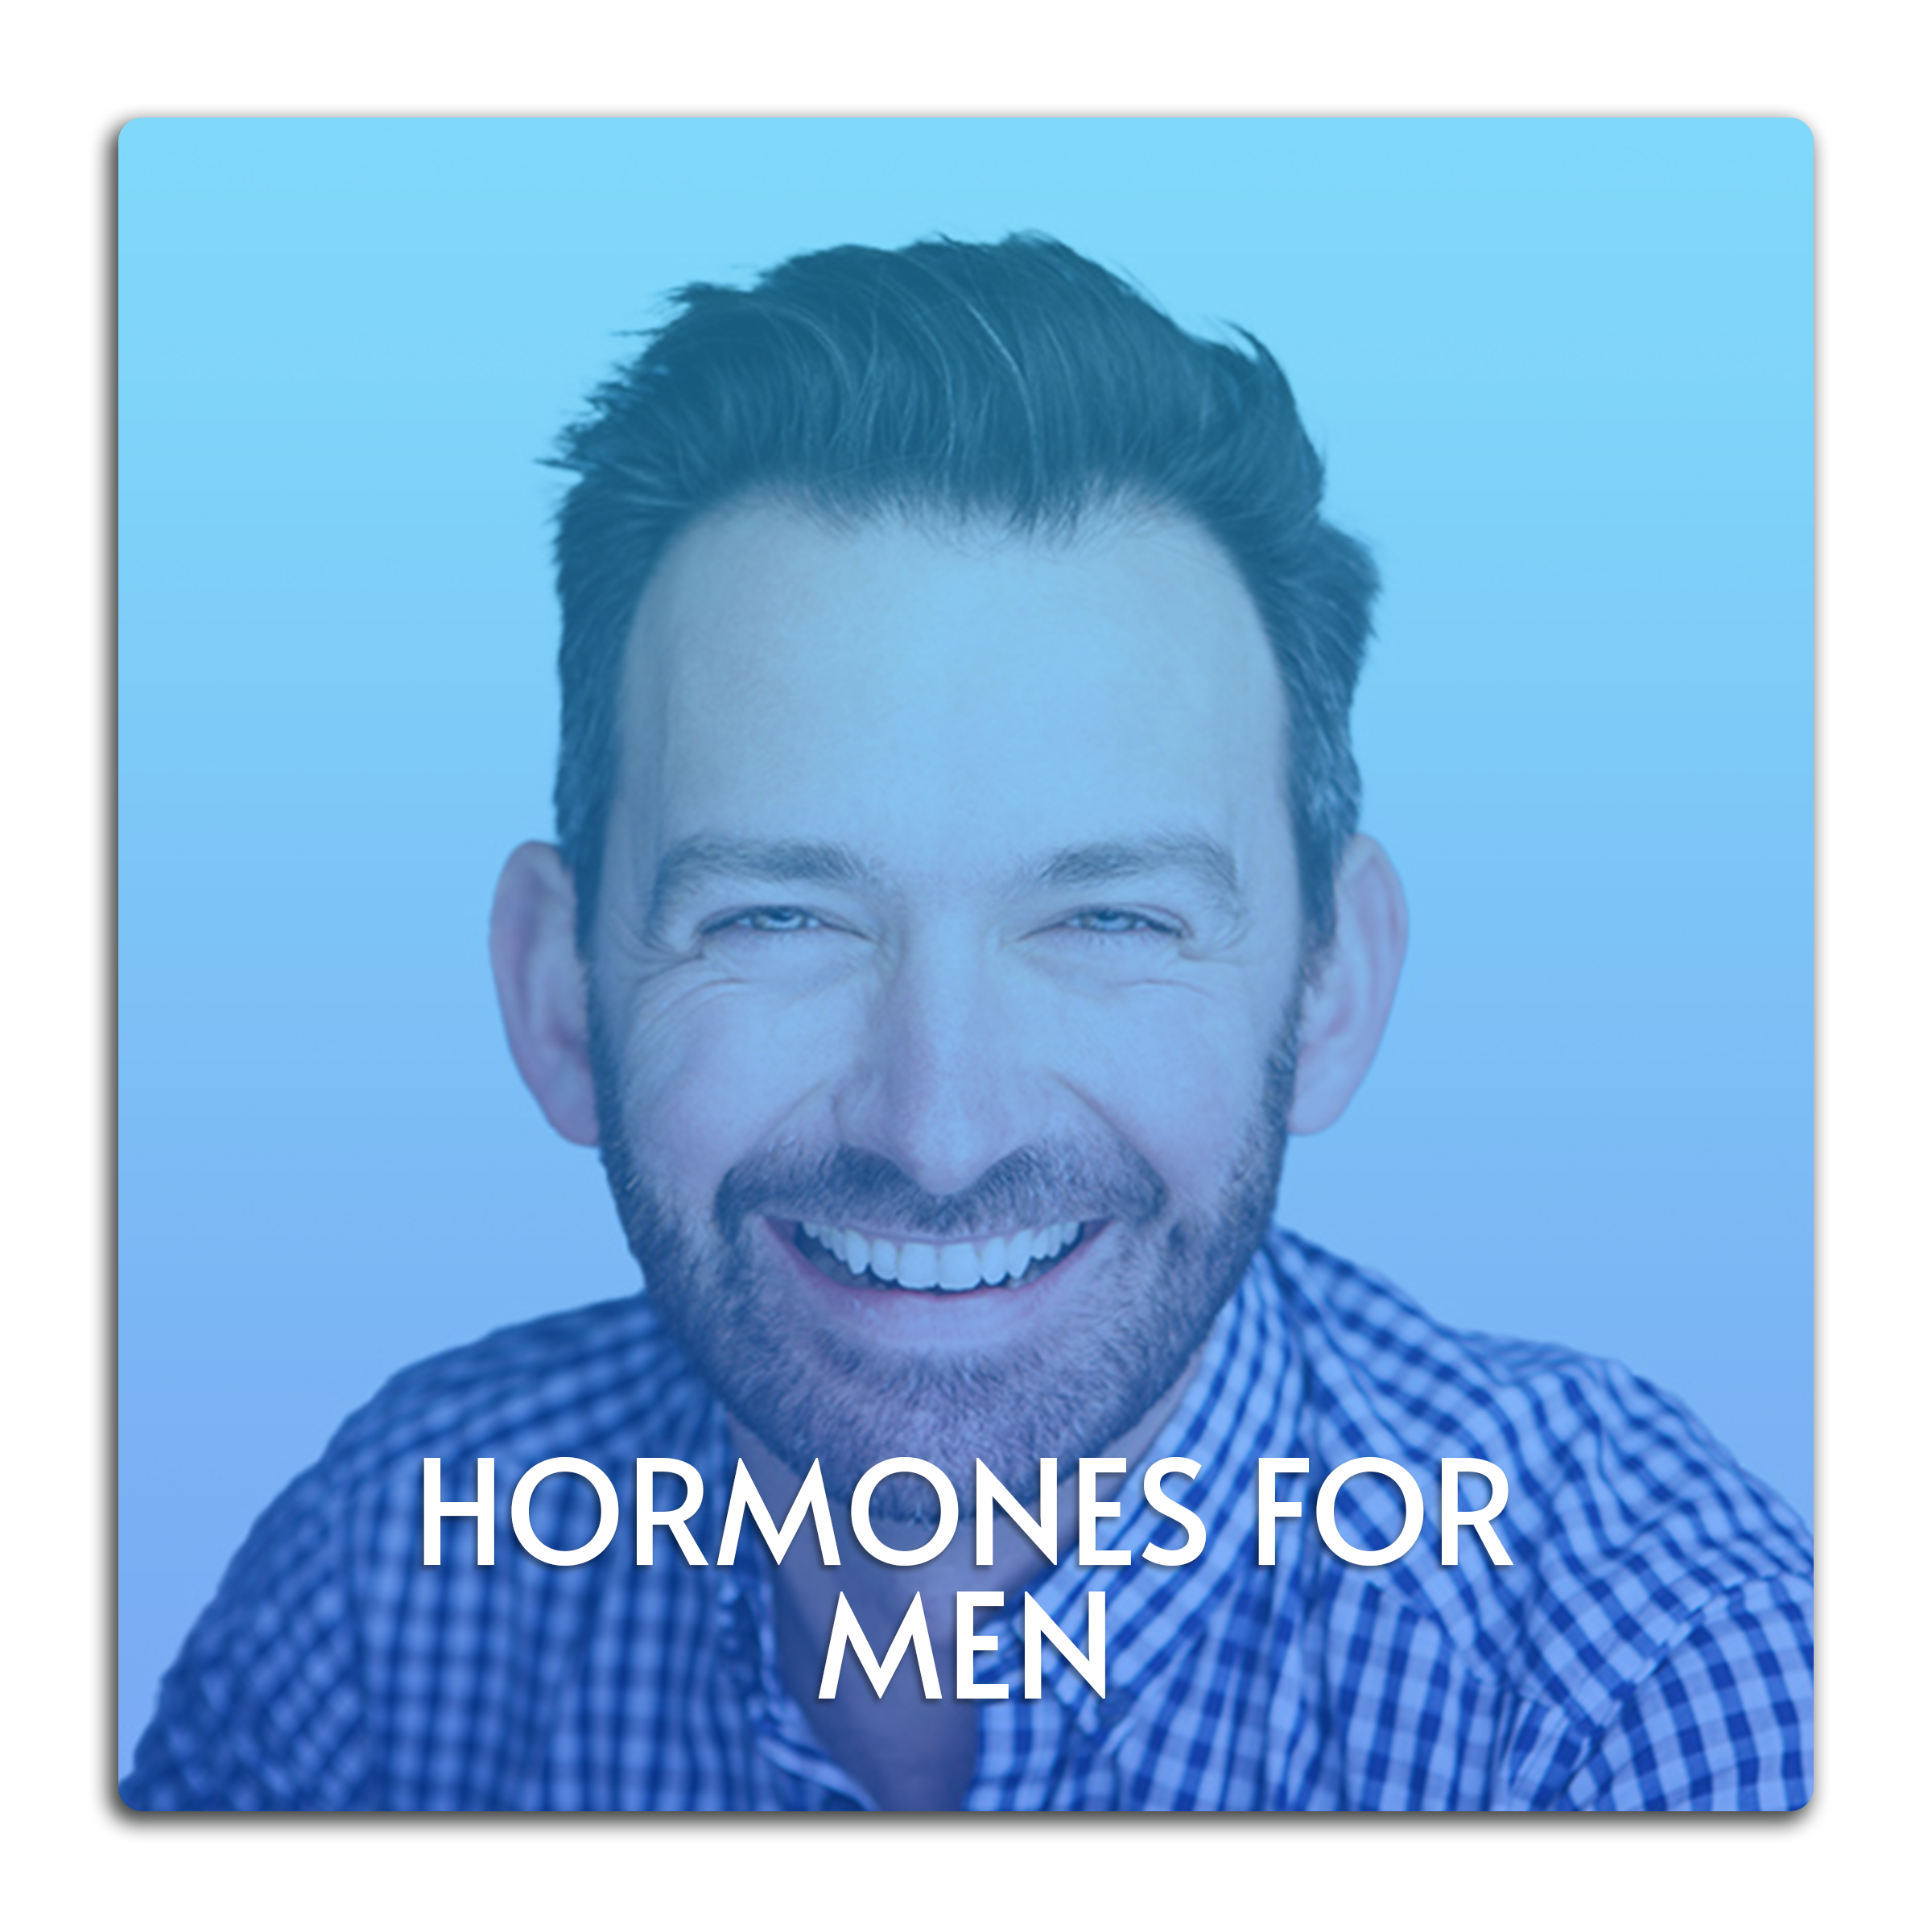 This image is a button linked to the Hormones for Men page